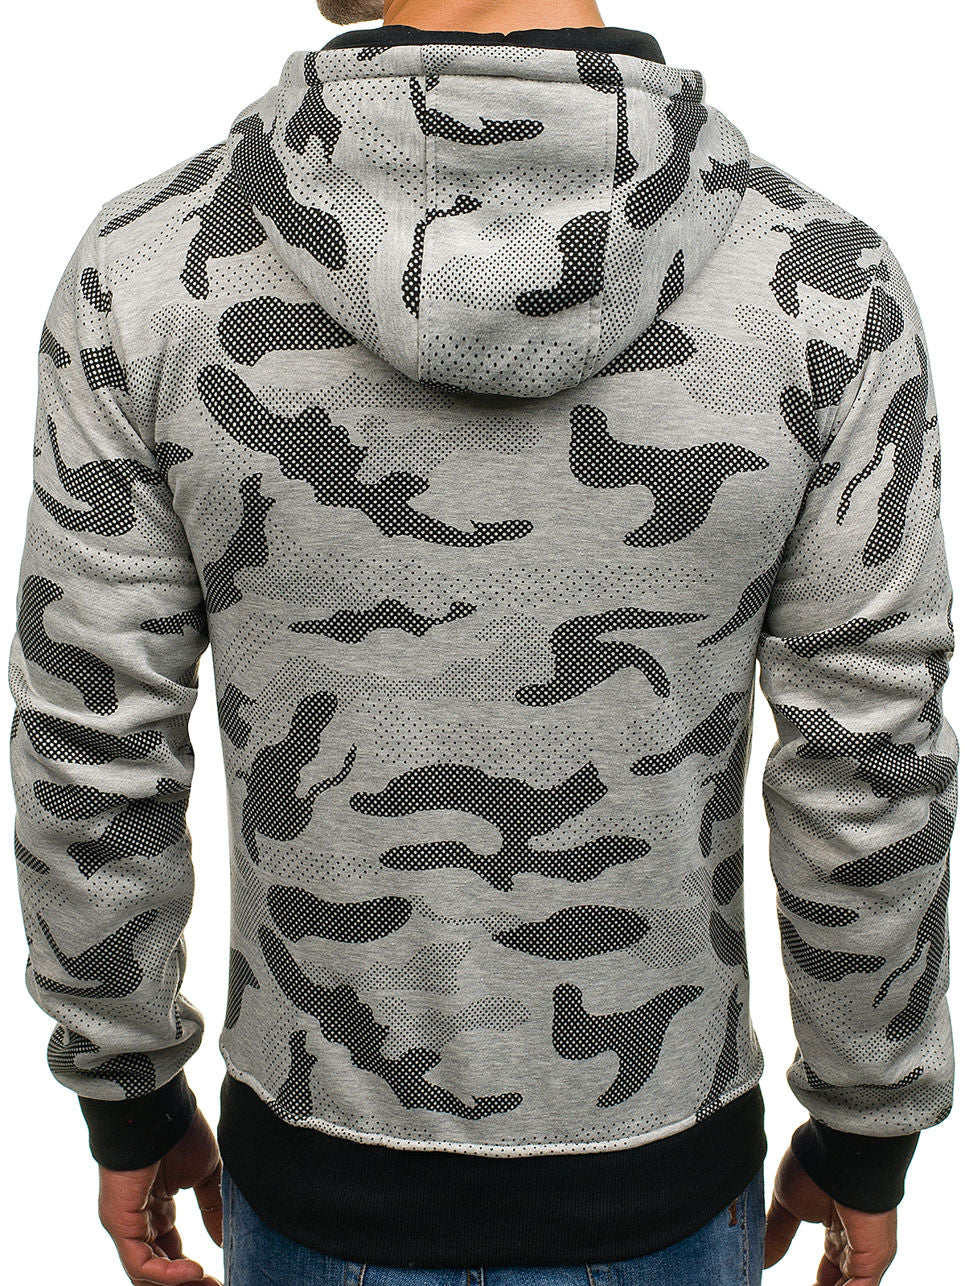 New Autumn Winter Mens Fashion Camouflage Sweatshirt Hip Hop Pullover Hoodies